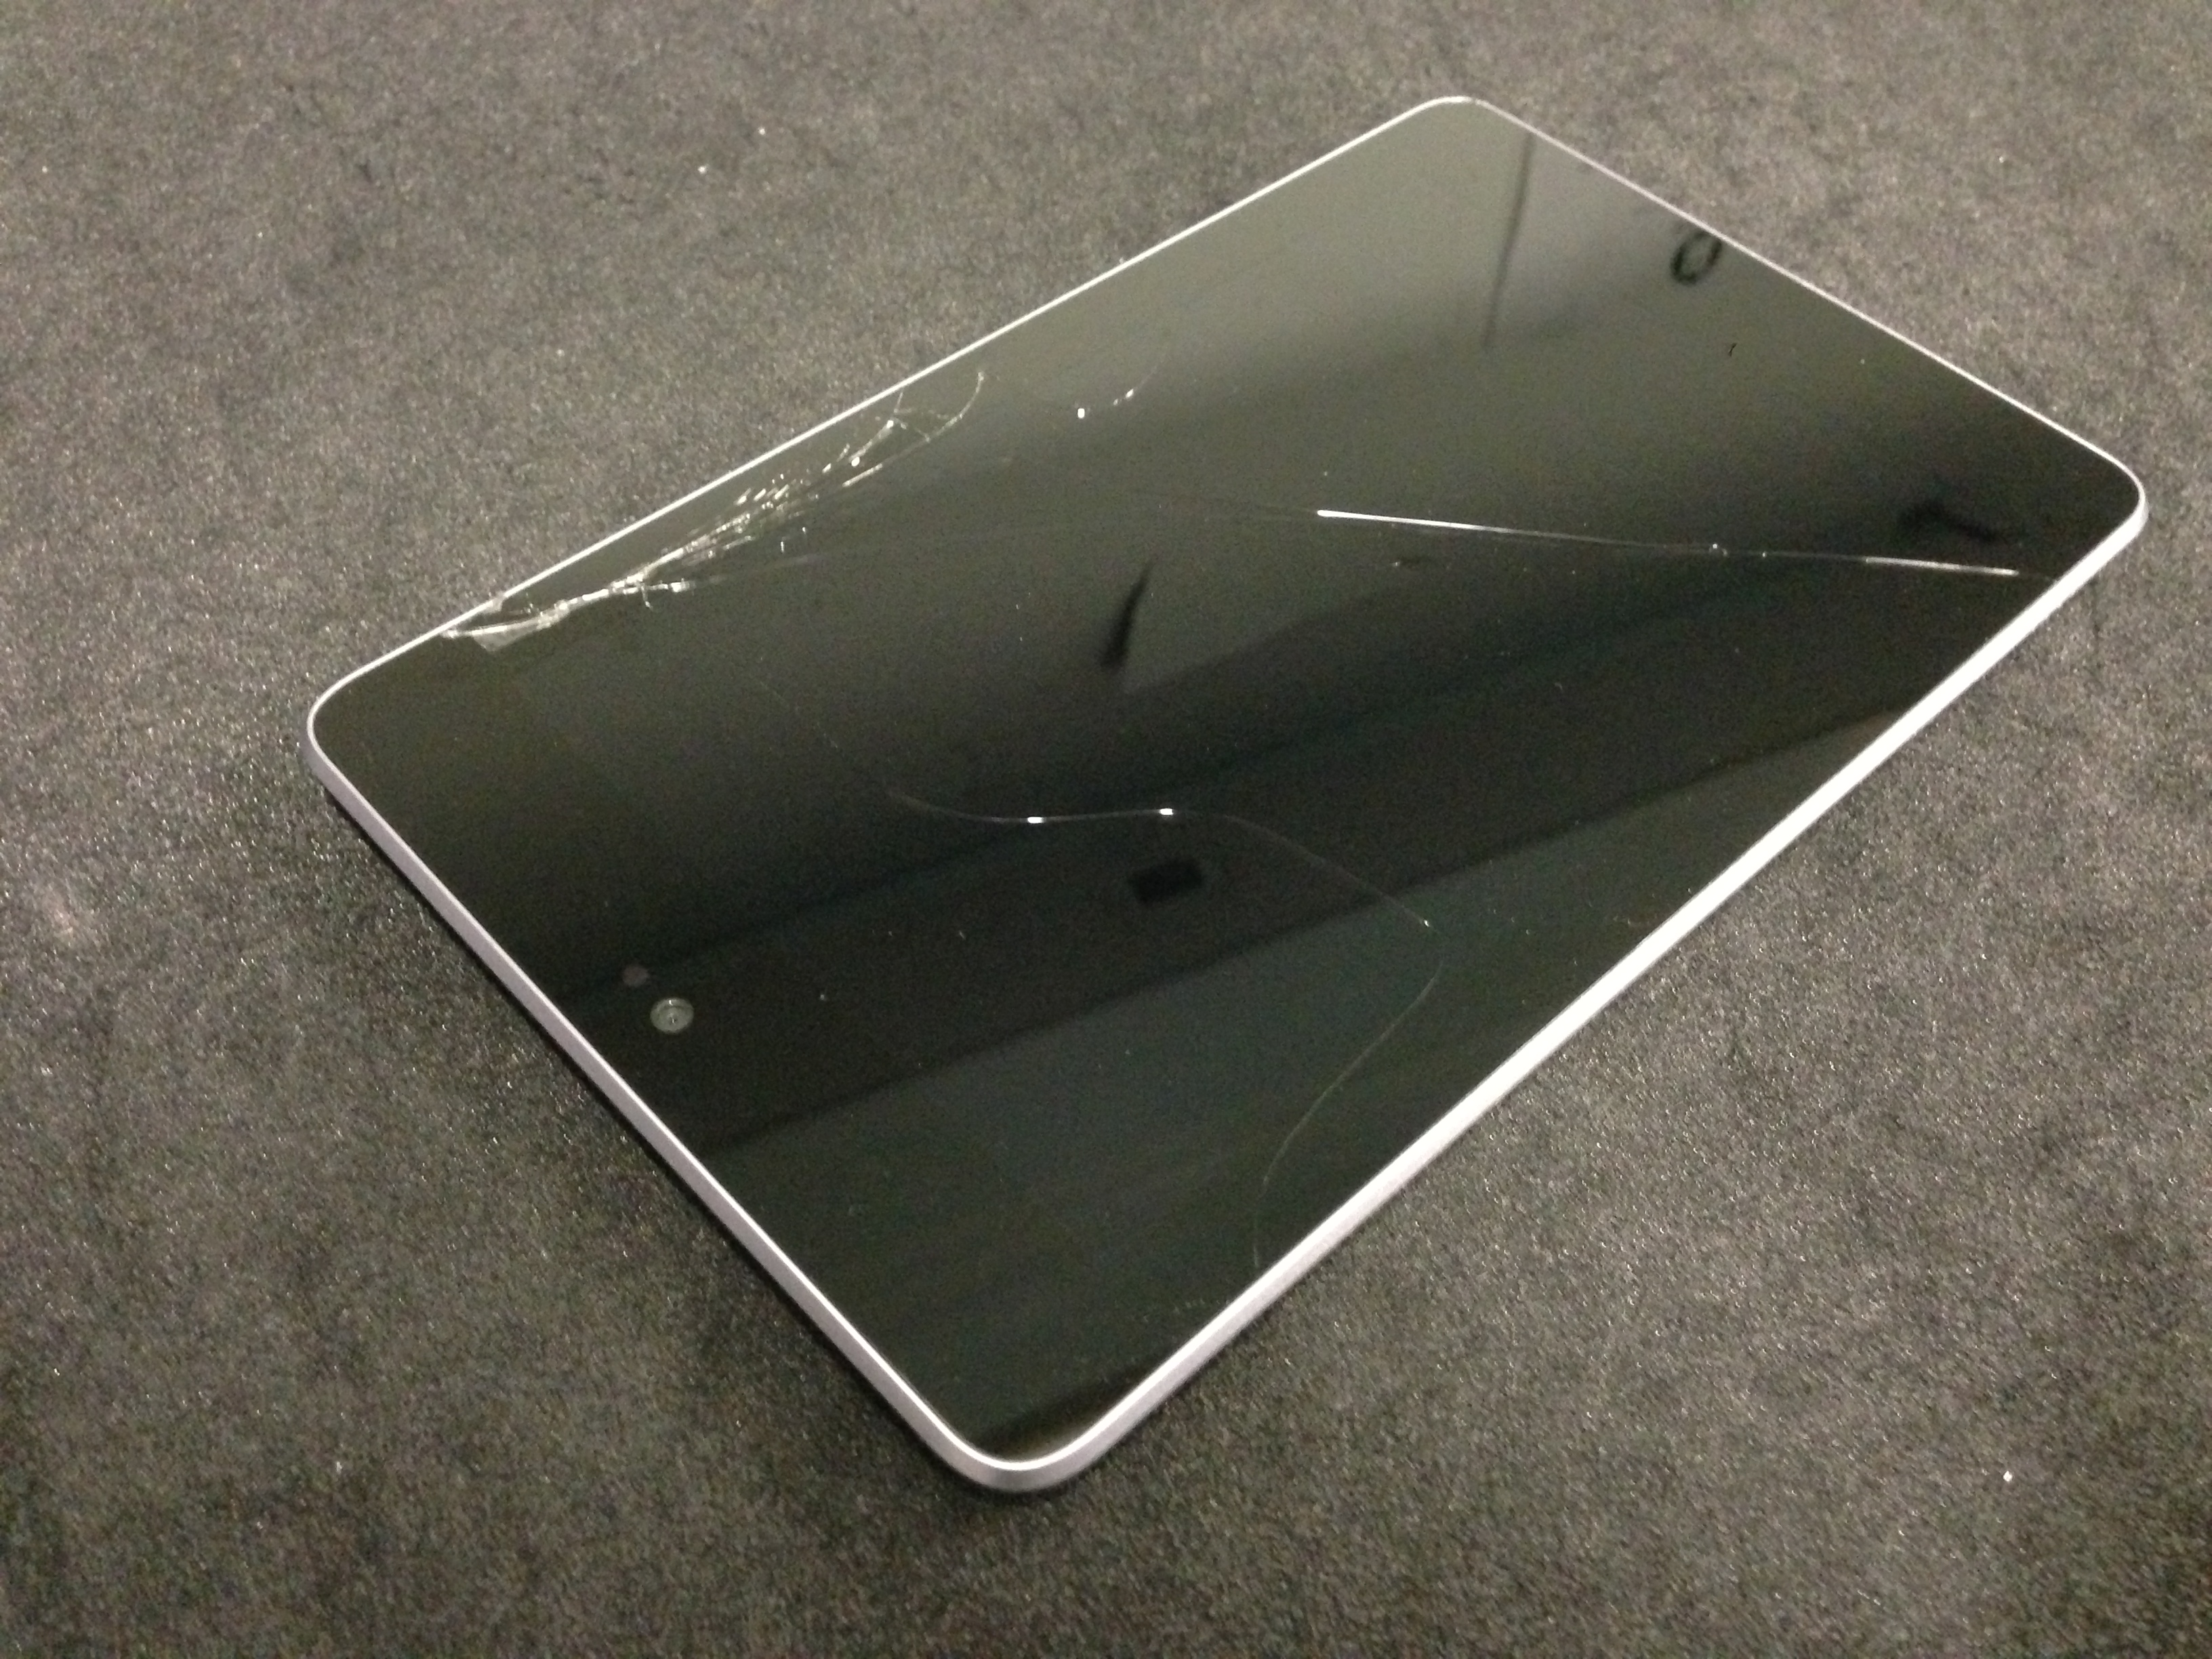 cracked nexus 7 screen mission repair specials and gadget info